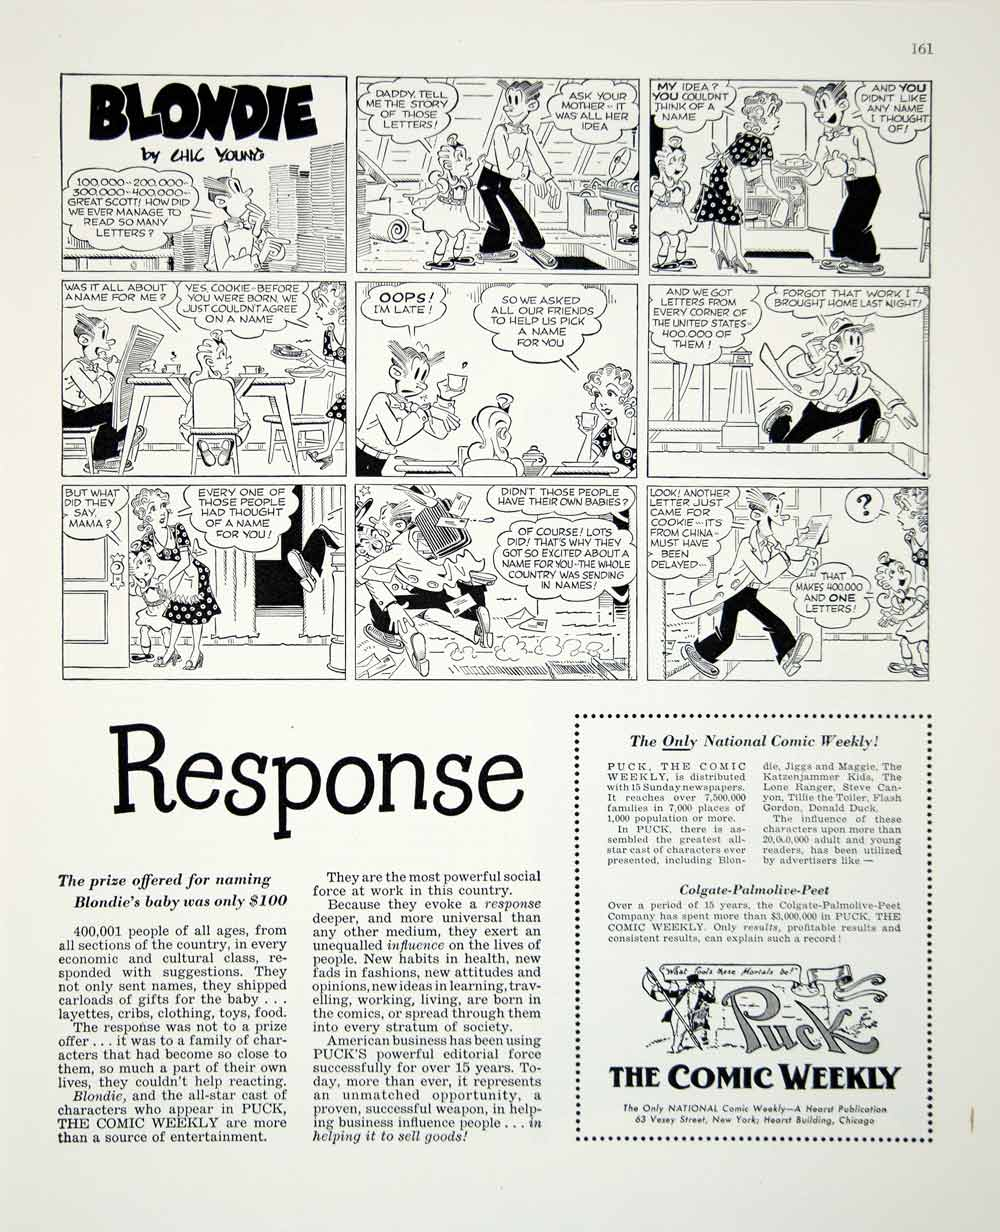 1948 Ad Blondie Puck Cookie Letters Comic Strip Cartoon Advertising Weekly FTM3